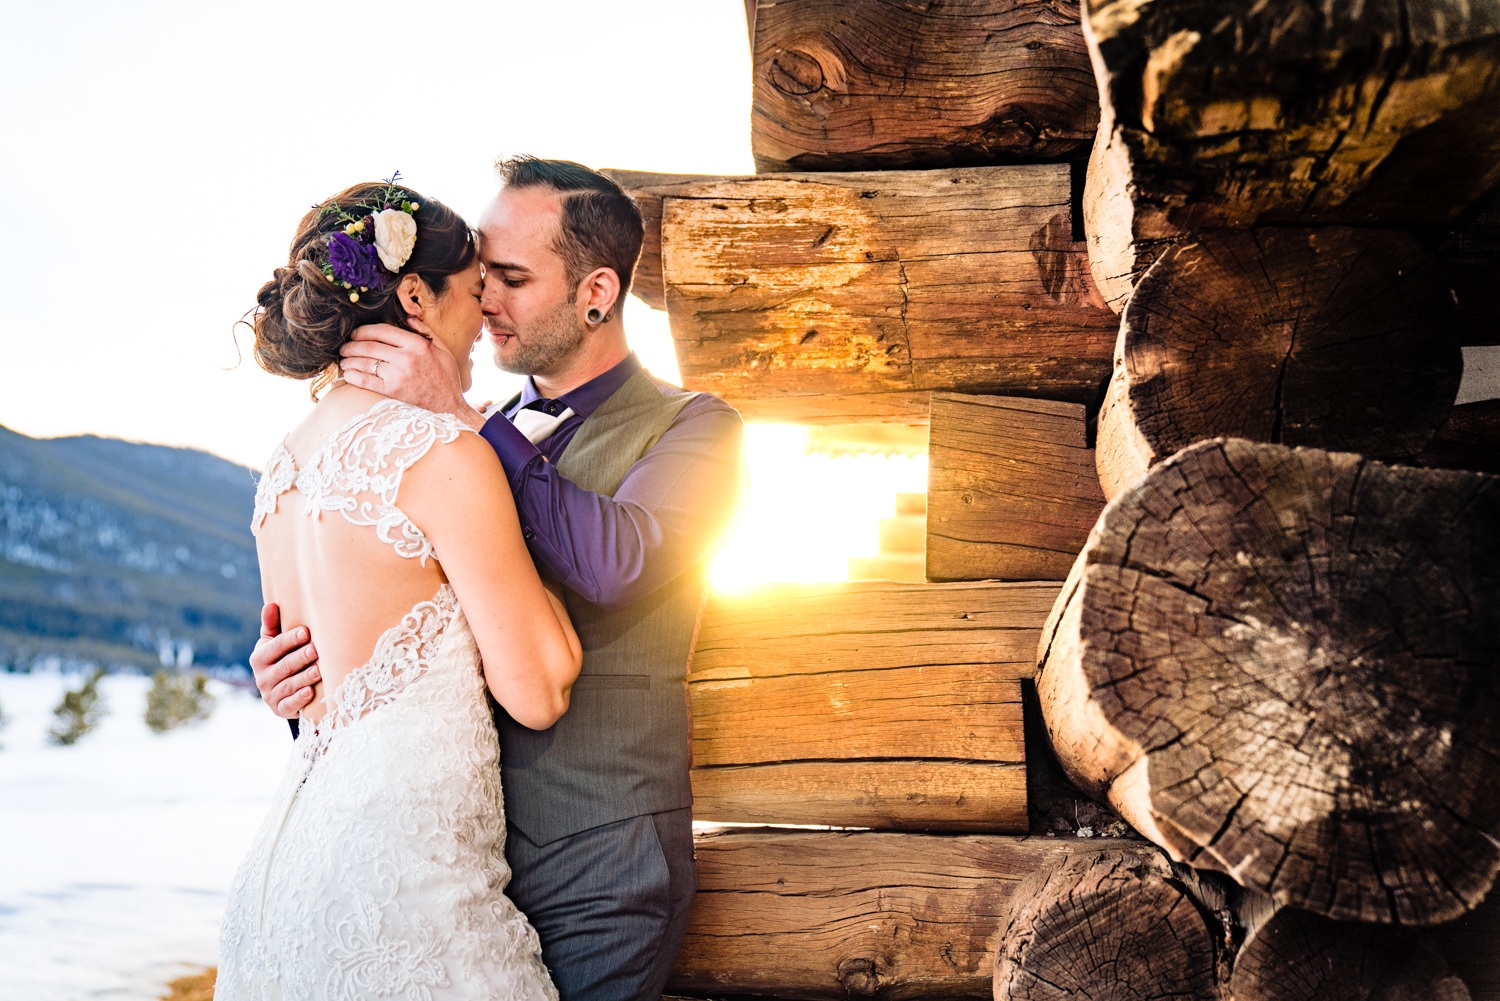 Keystone Resort and Keystone Ranch Wedding by Keystone Wedding Photographery, JMGant Photography.